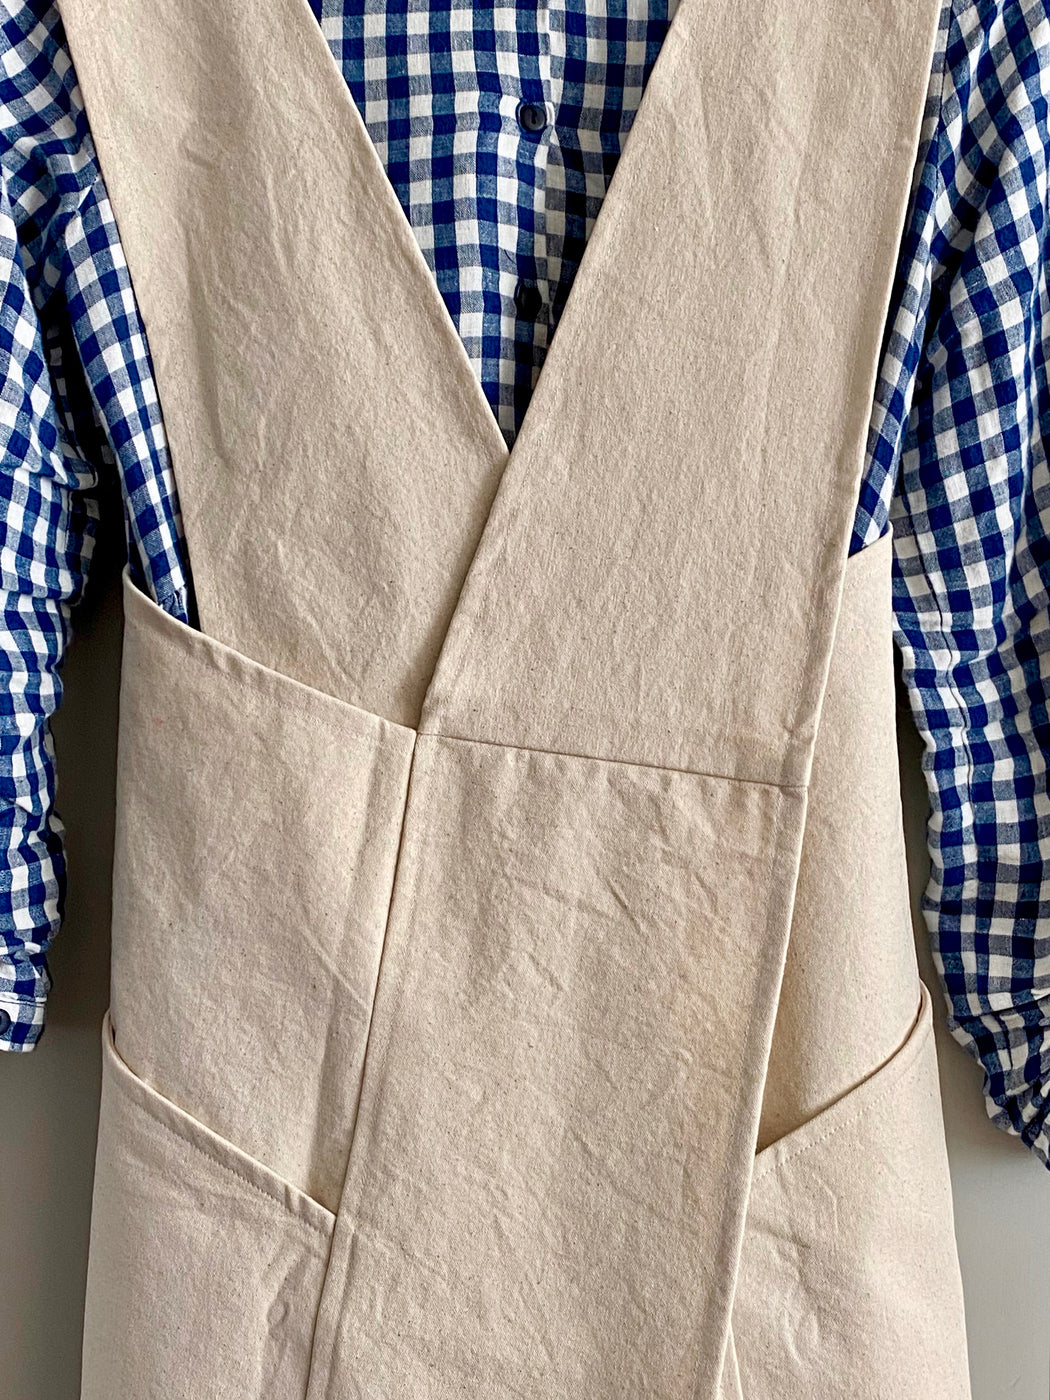 Natural Canvas Gardening Apron